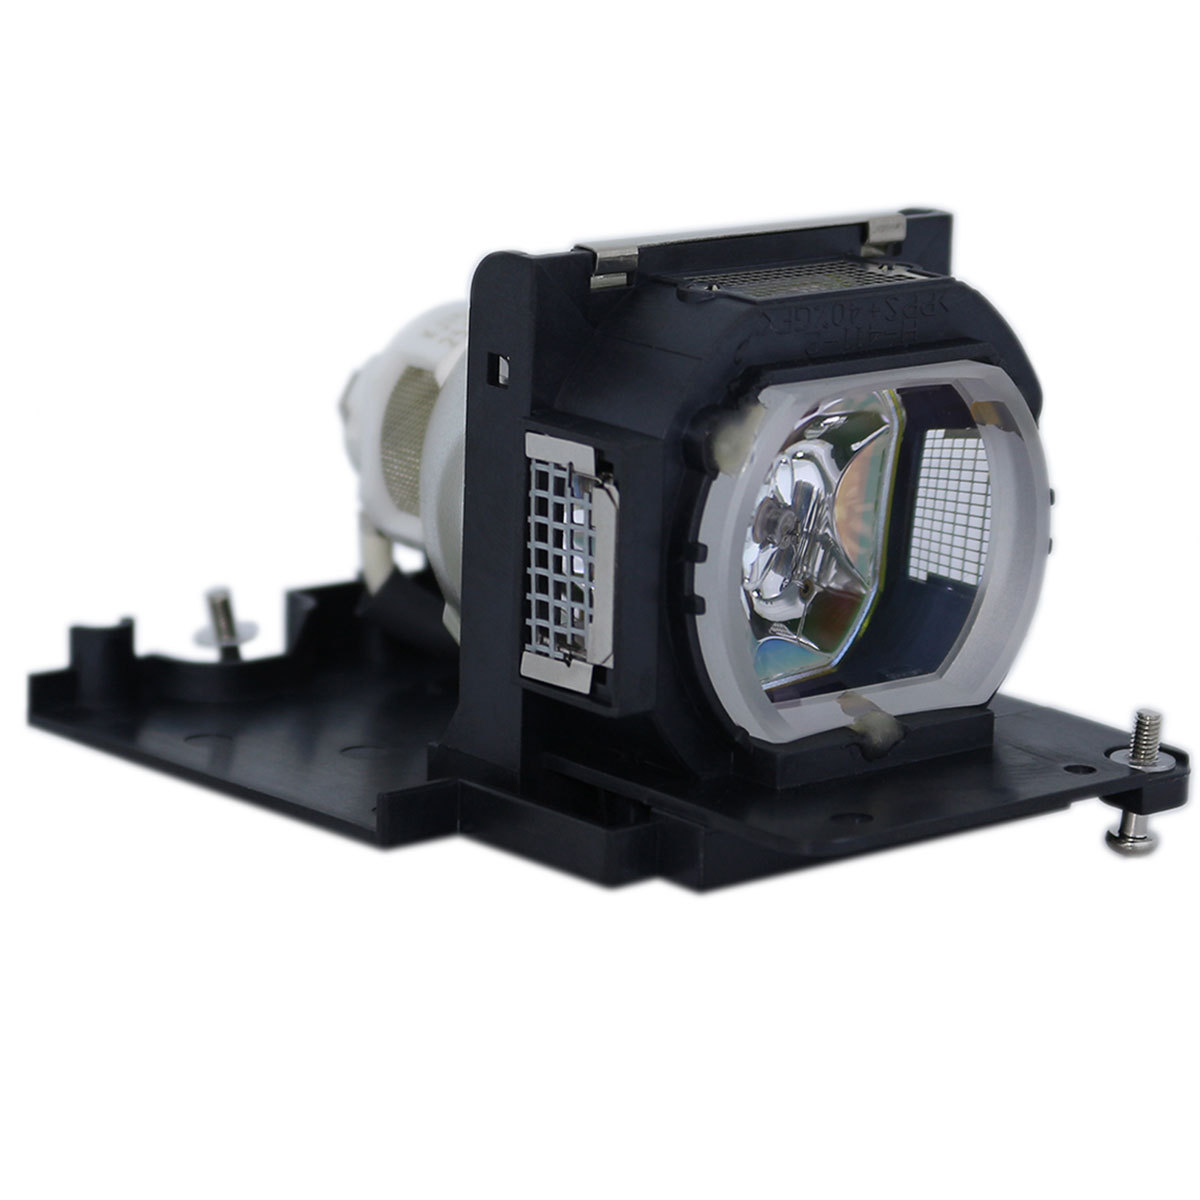 Primary image for Geha 60-203257 Ushio Projector Lamp Module